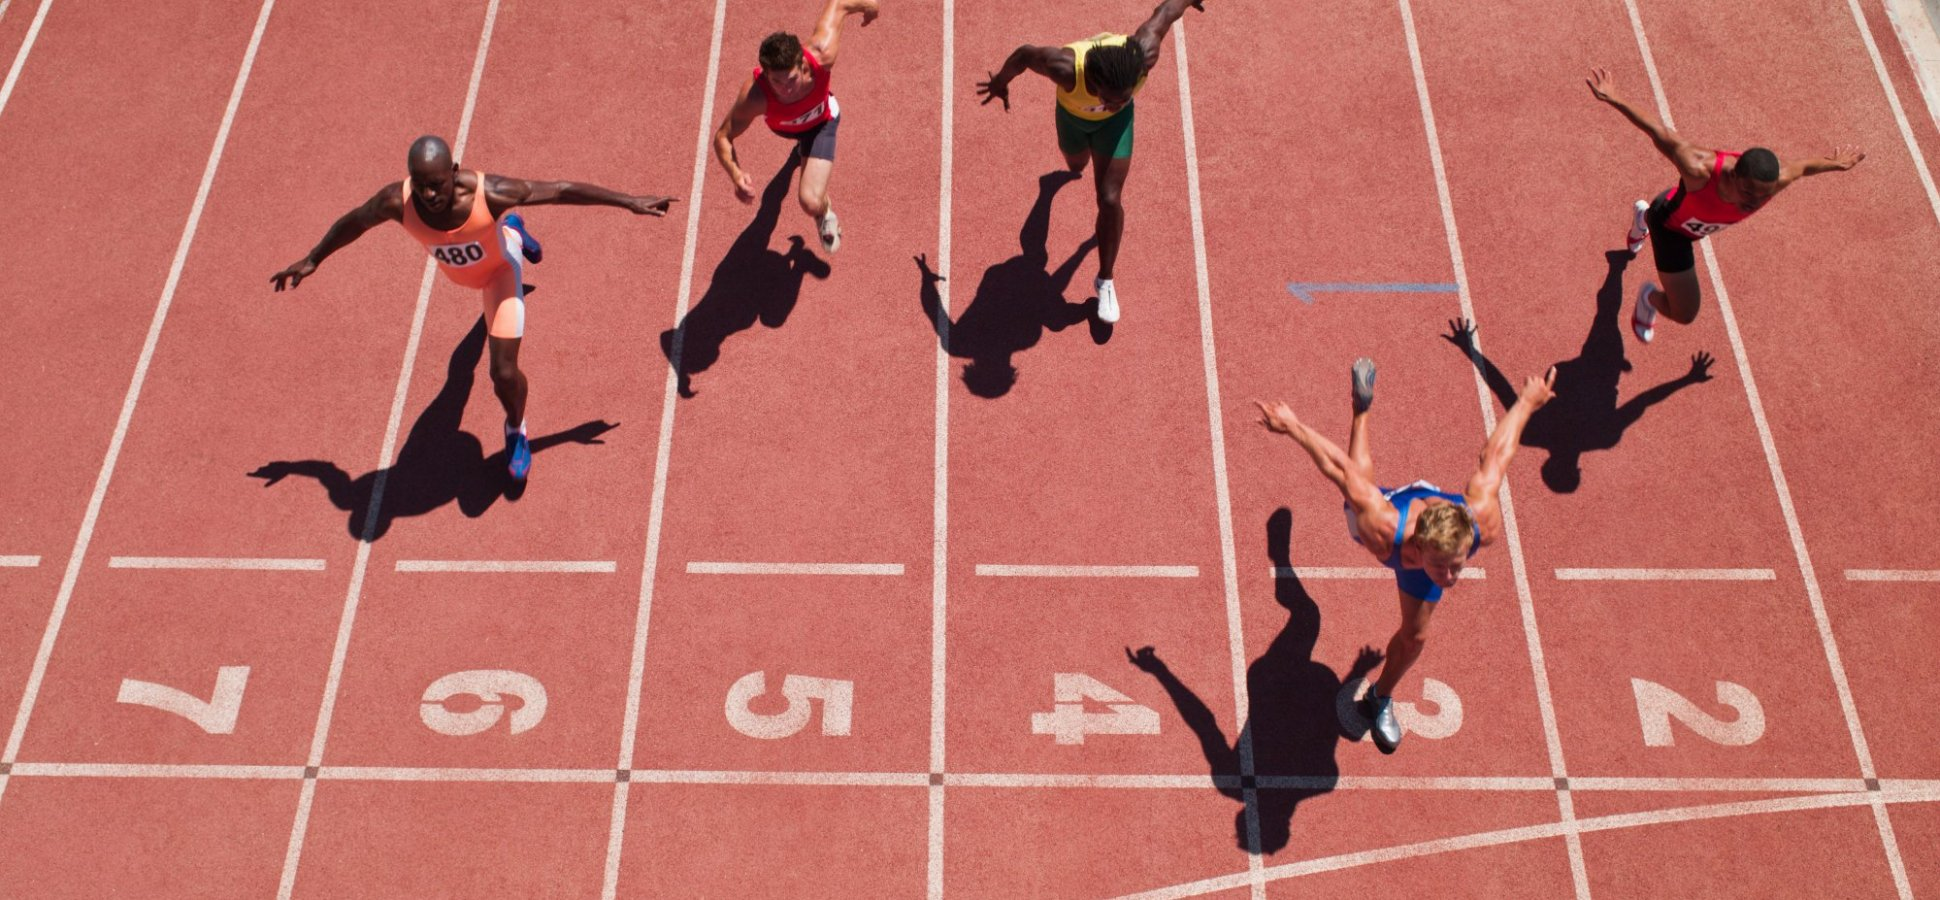 Don't Start Your Business Until You've Identified These 4 Things About Your Competition